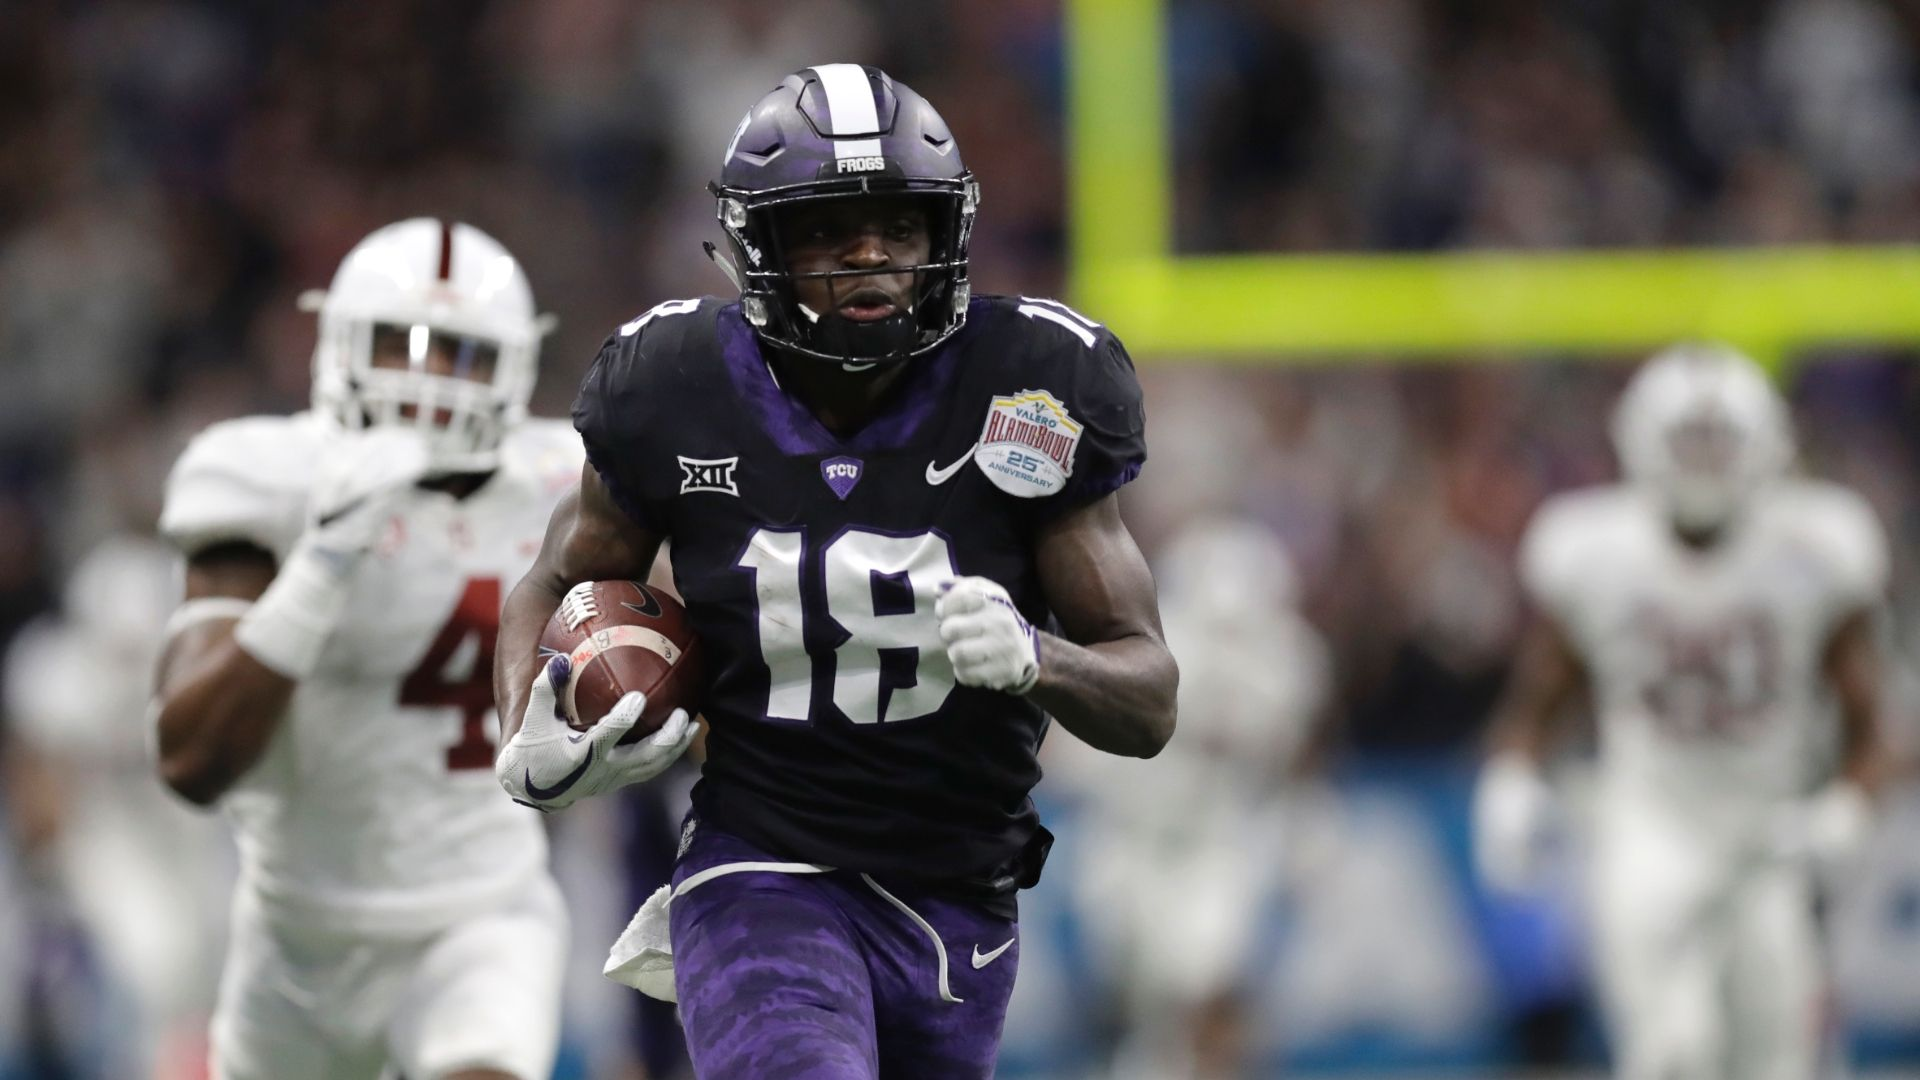 Big plays from TCU lead to upset of Stanford